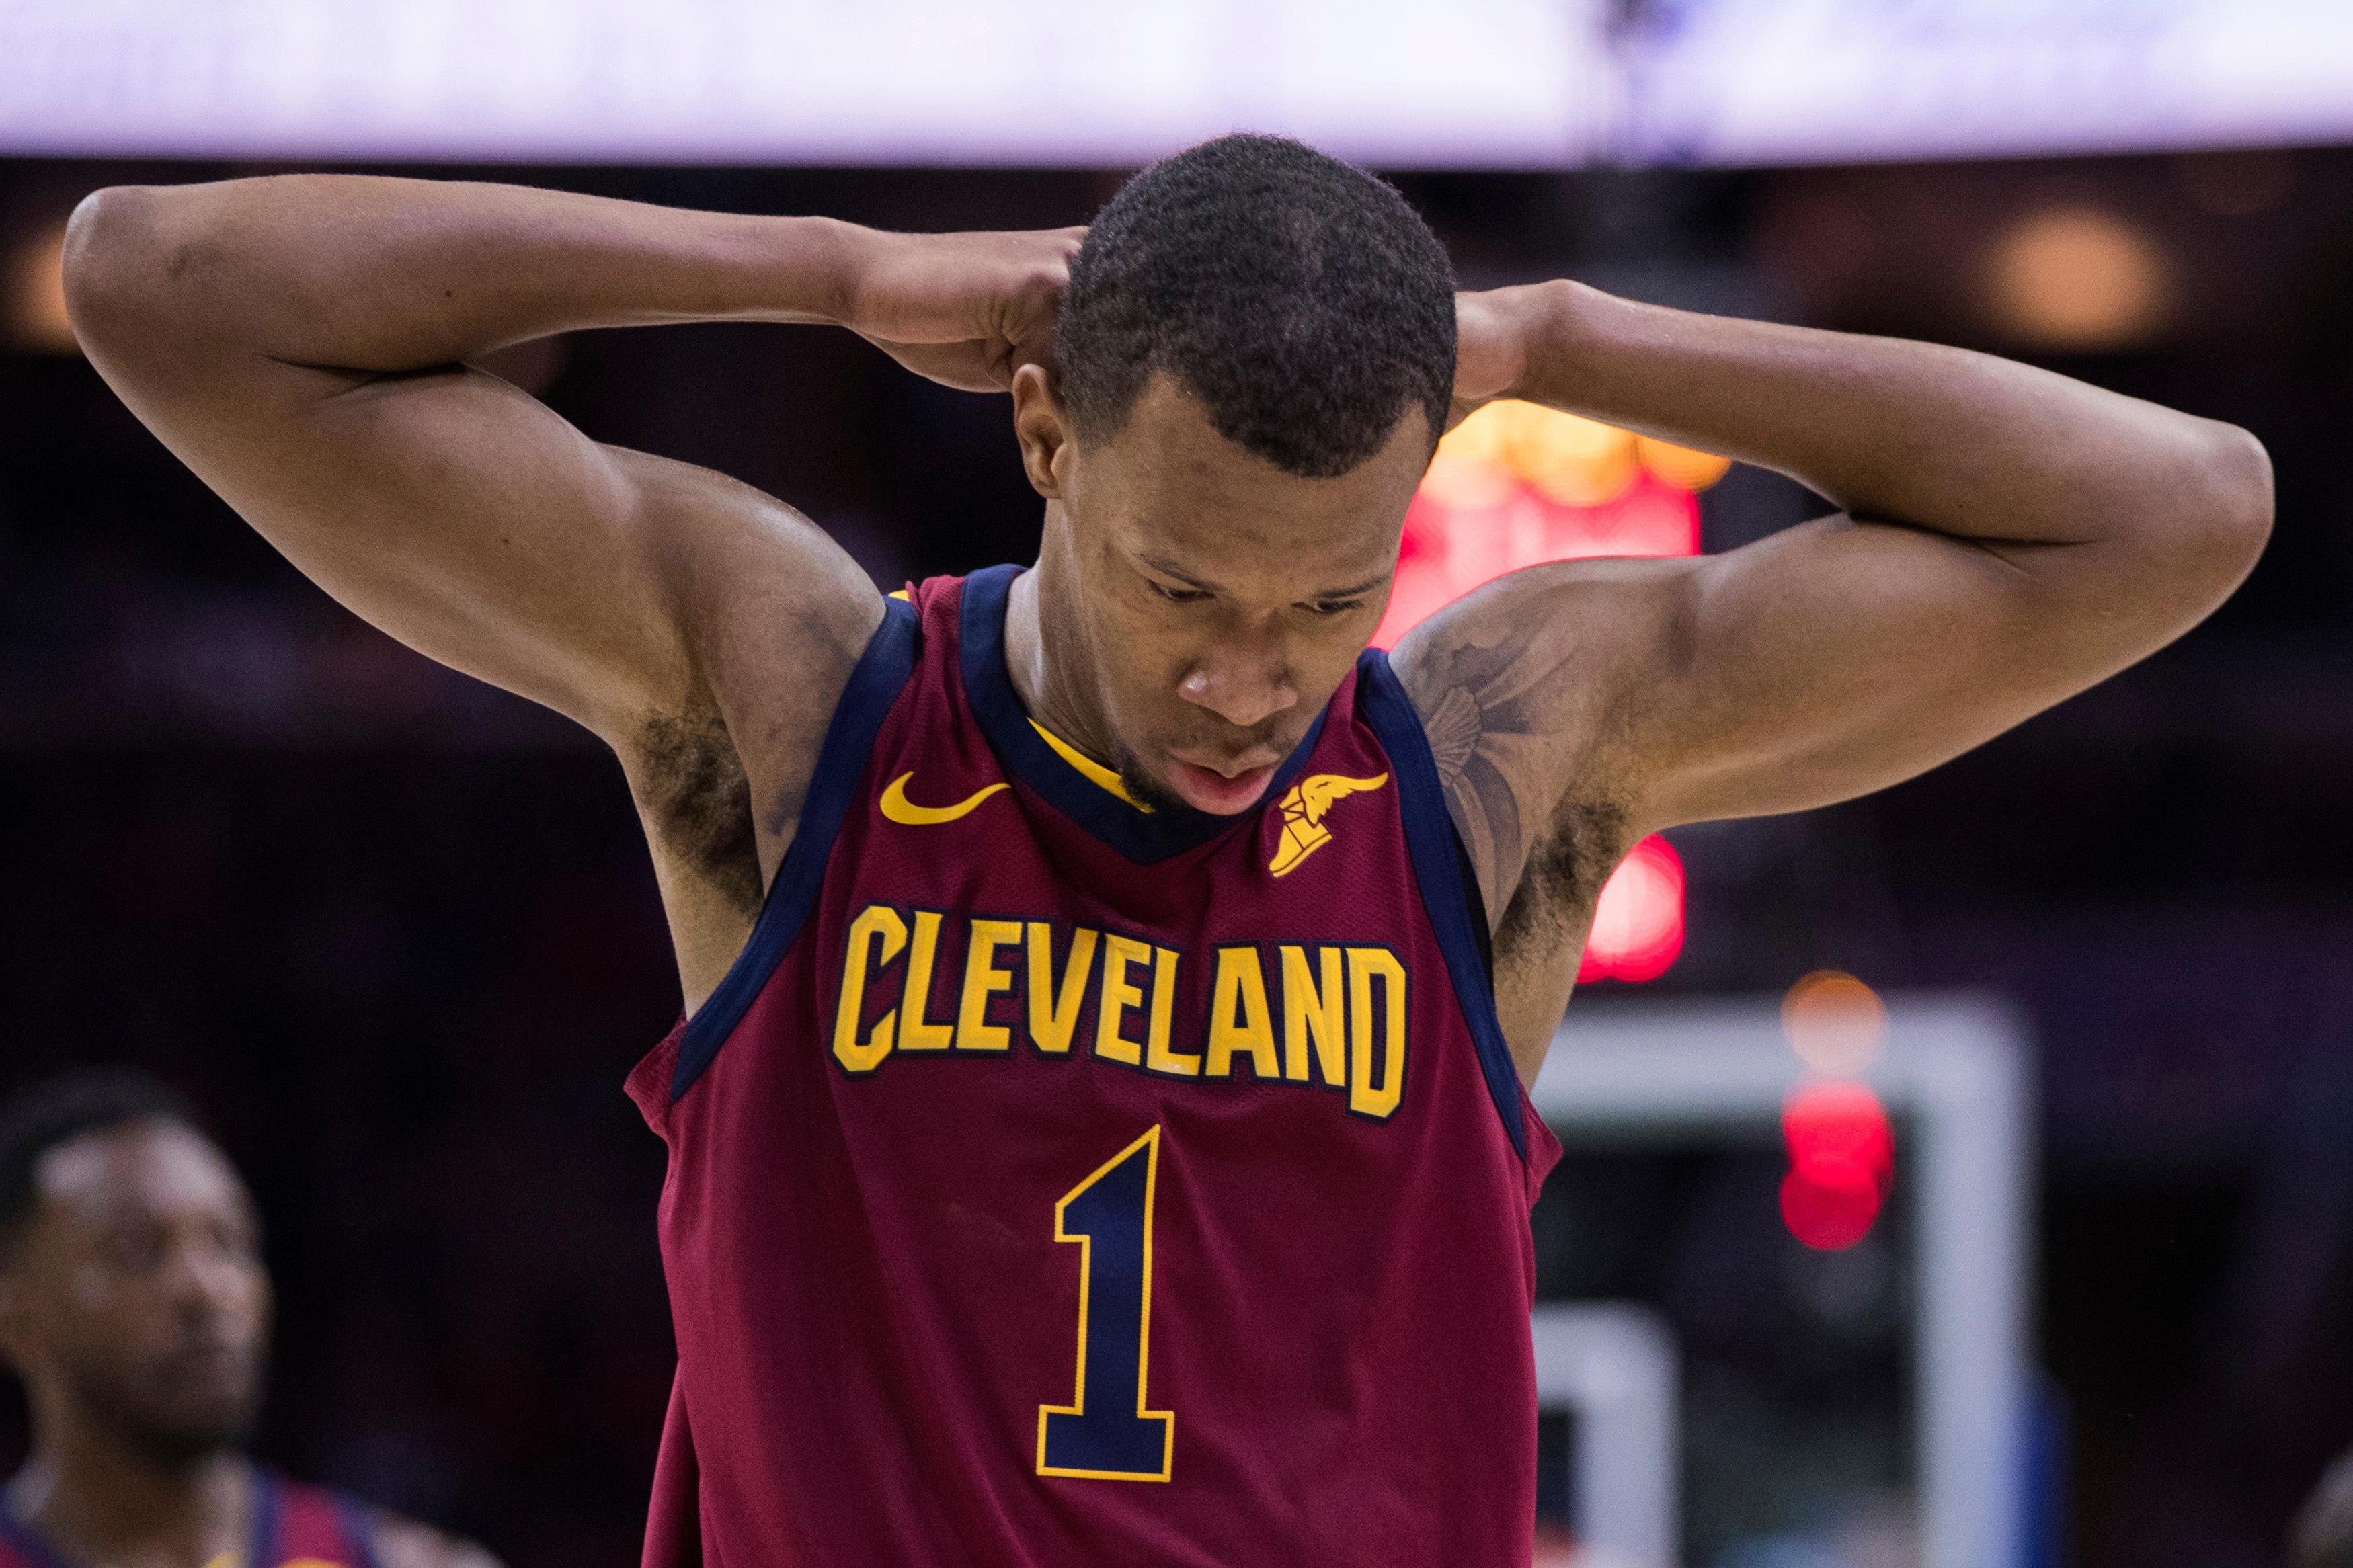 File-This April 6, 2018, file photo shows Cleveland Cavaliers' Rodney Hood reacting during the first half of an NBA basketball game against the Philadelphia 76ers, in Philadelphia.  Hood's most notable moment in these playoffs happened while sitting on the bench. He's getting up and getting in. Looking for an offensive weapon to negate Golden State's size and ability to switch on defense, Cavaliers coach Tyronn Lue is expected to play Hood in Game 3 of the NBA Finals Wednesday, June 6, 2018, in hopes of cutting into the Warriors' series lead. (AP Photo/Chris Szagola, File)